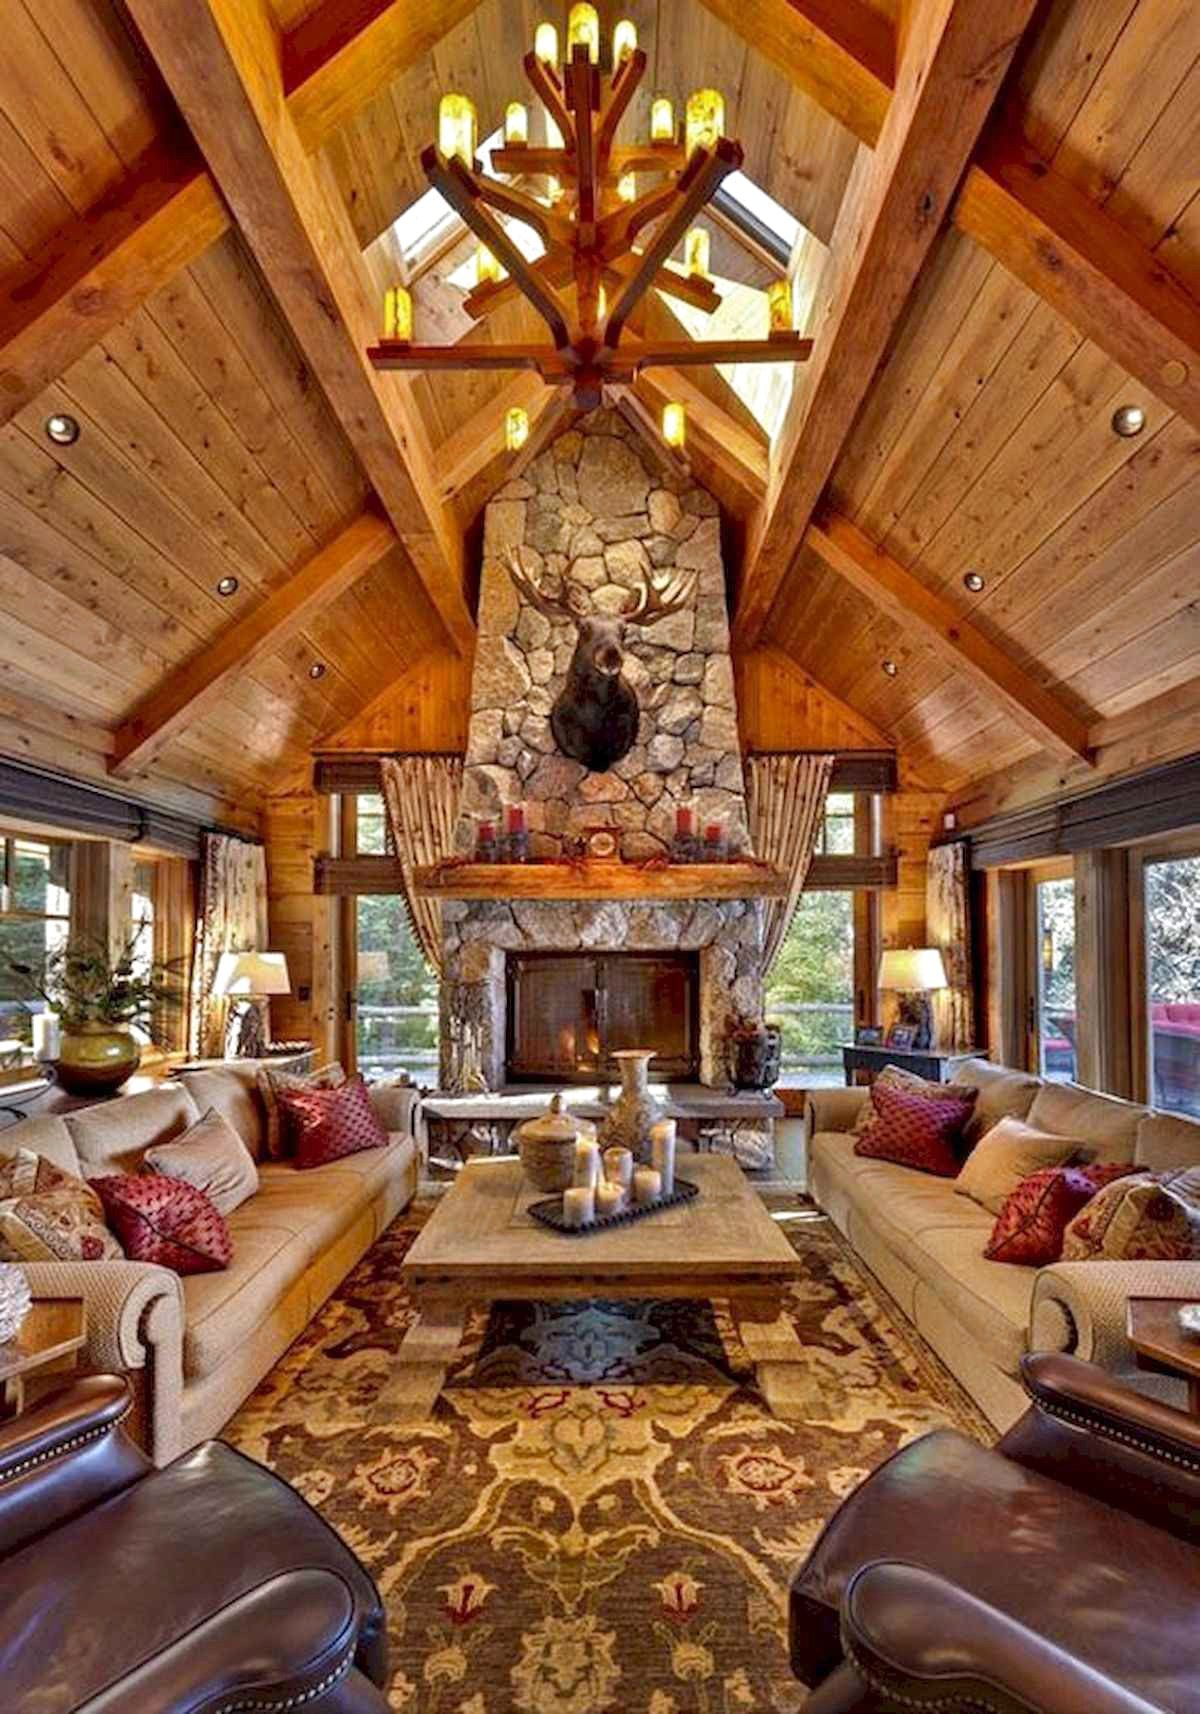 56 Favourite Log Cabin Homes Modern Design Ideas (44) - Home & Garden